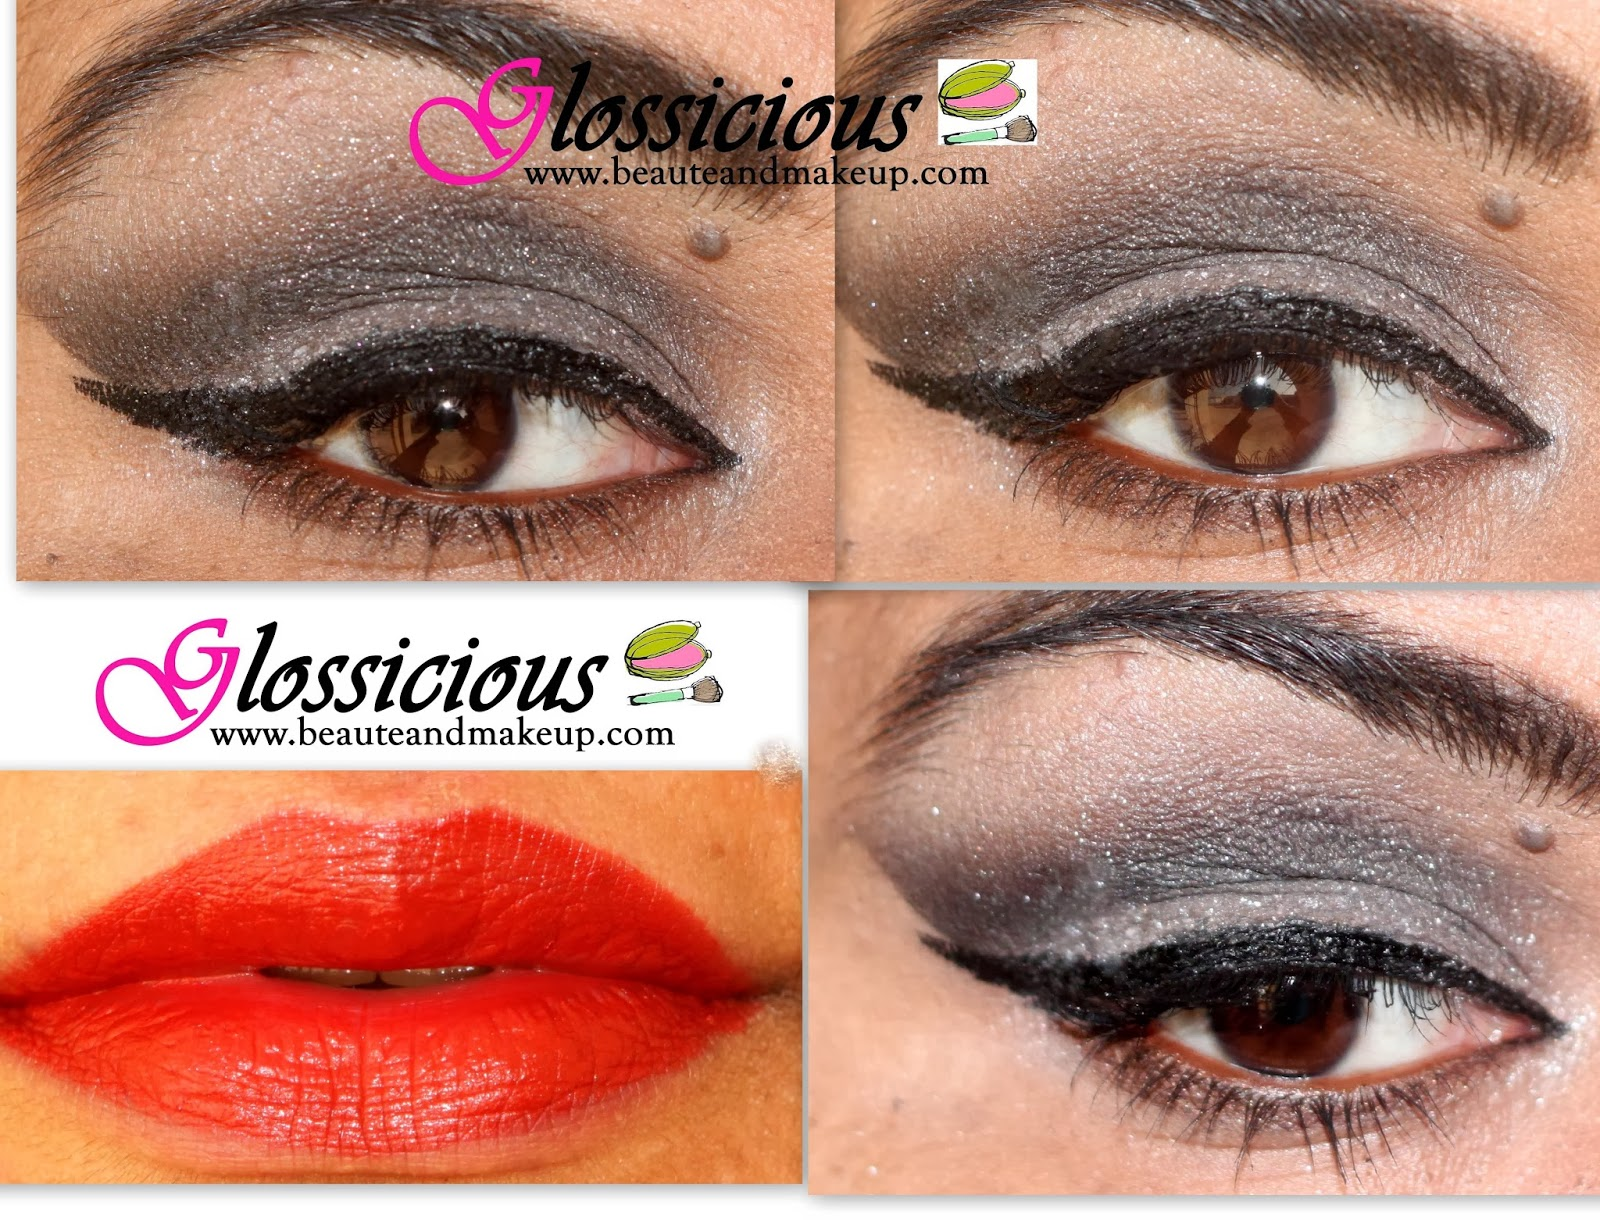 Glossicious by sarah pakistani beauty blogreviewsmakeup tips 11800 value for only 10620 includes one each of crimson lip liner venetian red cream lipstick maraschino lip lacquer silver lining glow eye color baditri Image collections